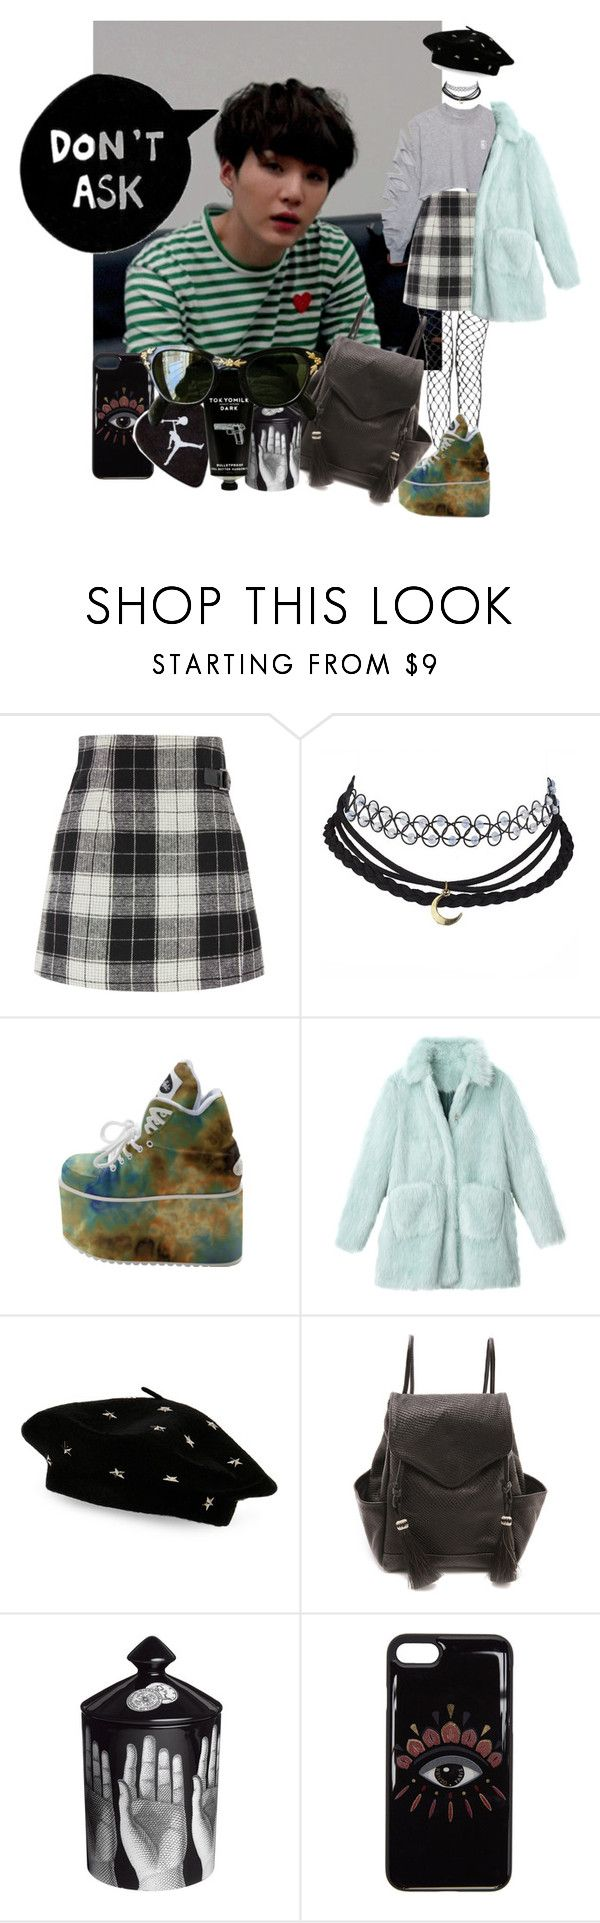 //506// by danielagreg on Polyvore featuring Oliveve, Kenzo, Steve Madden, TokyoMilk, Fornasetti and GET LOST